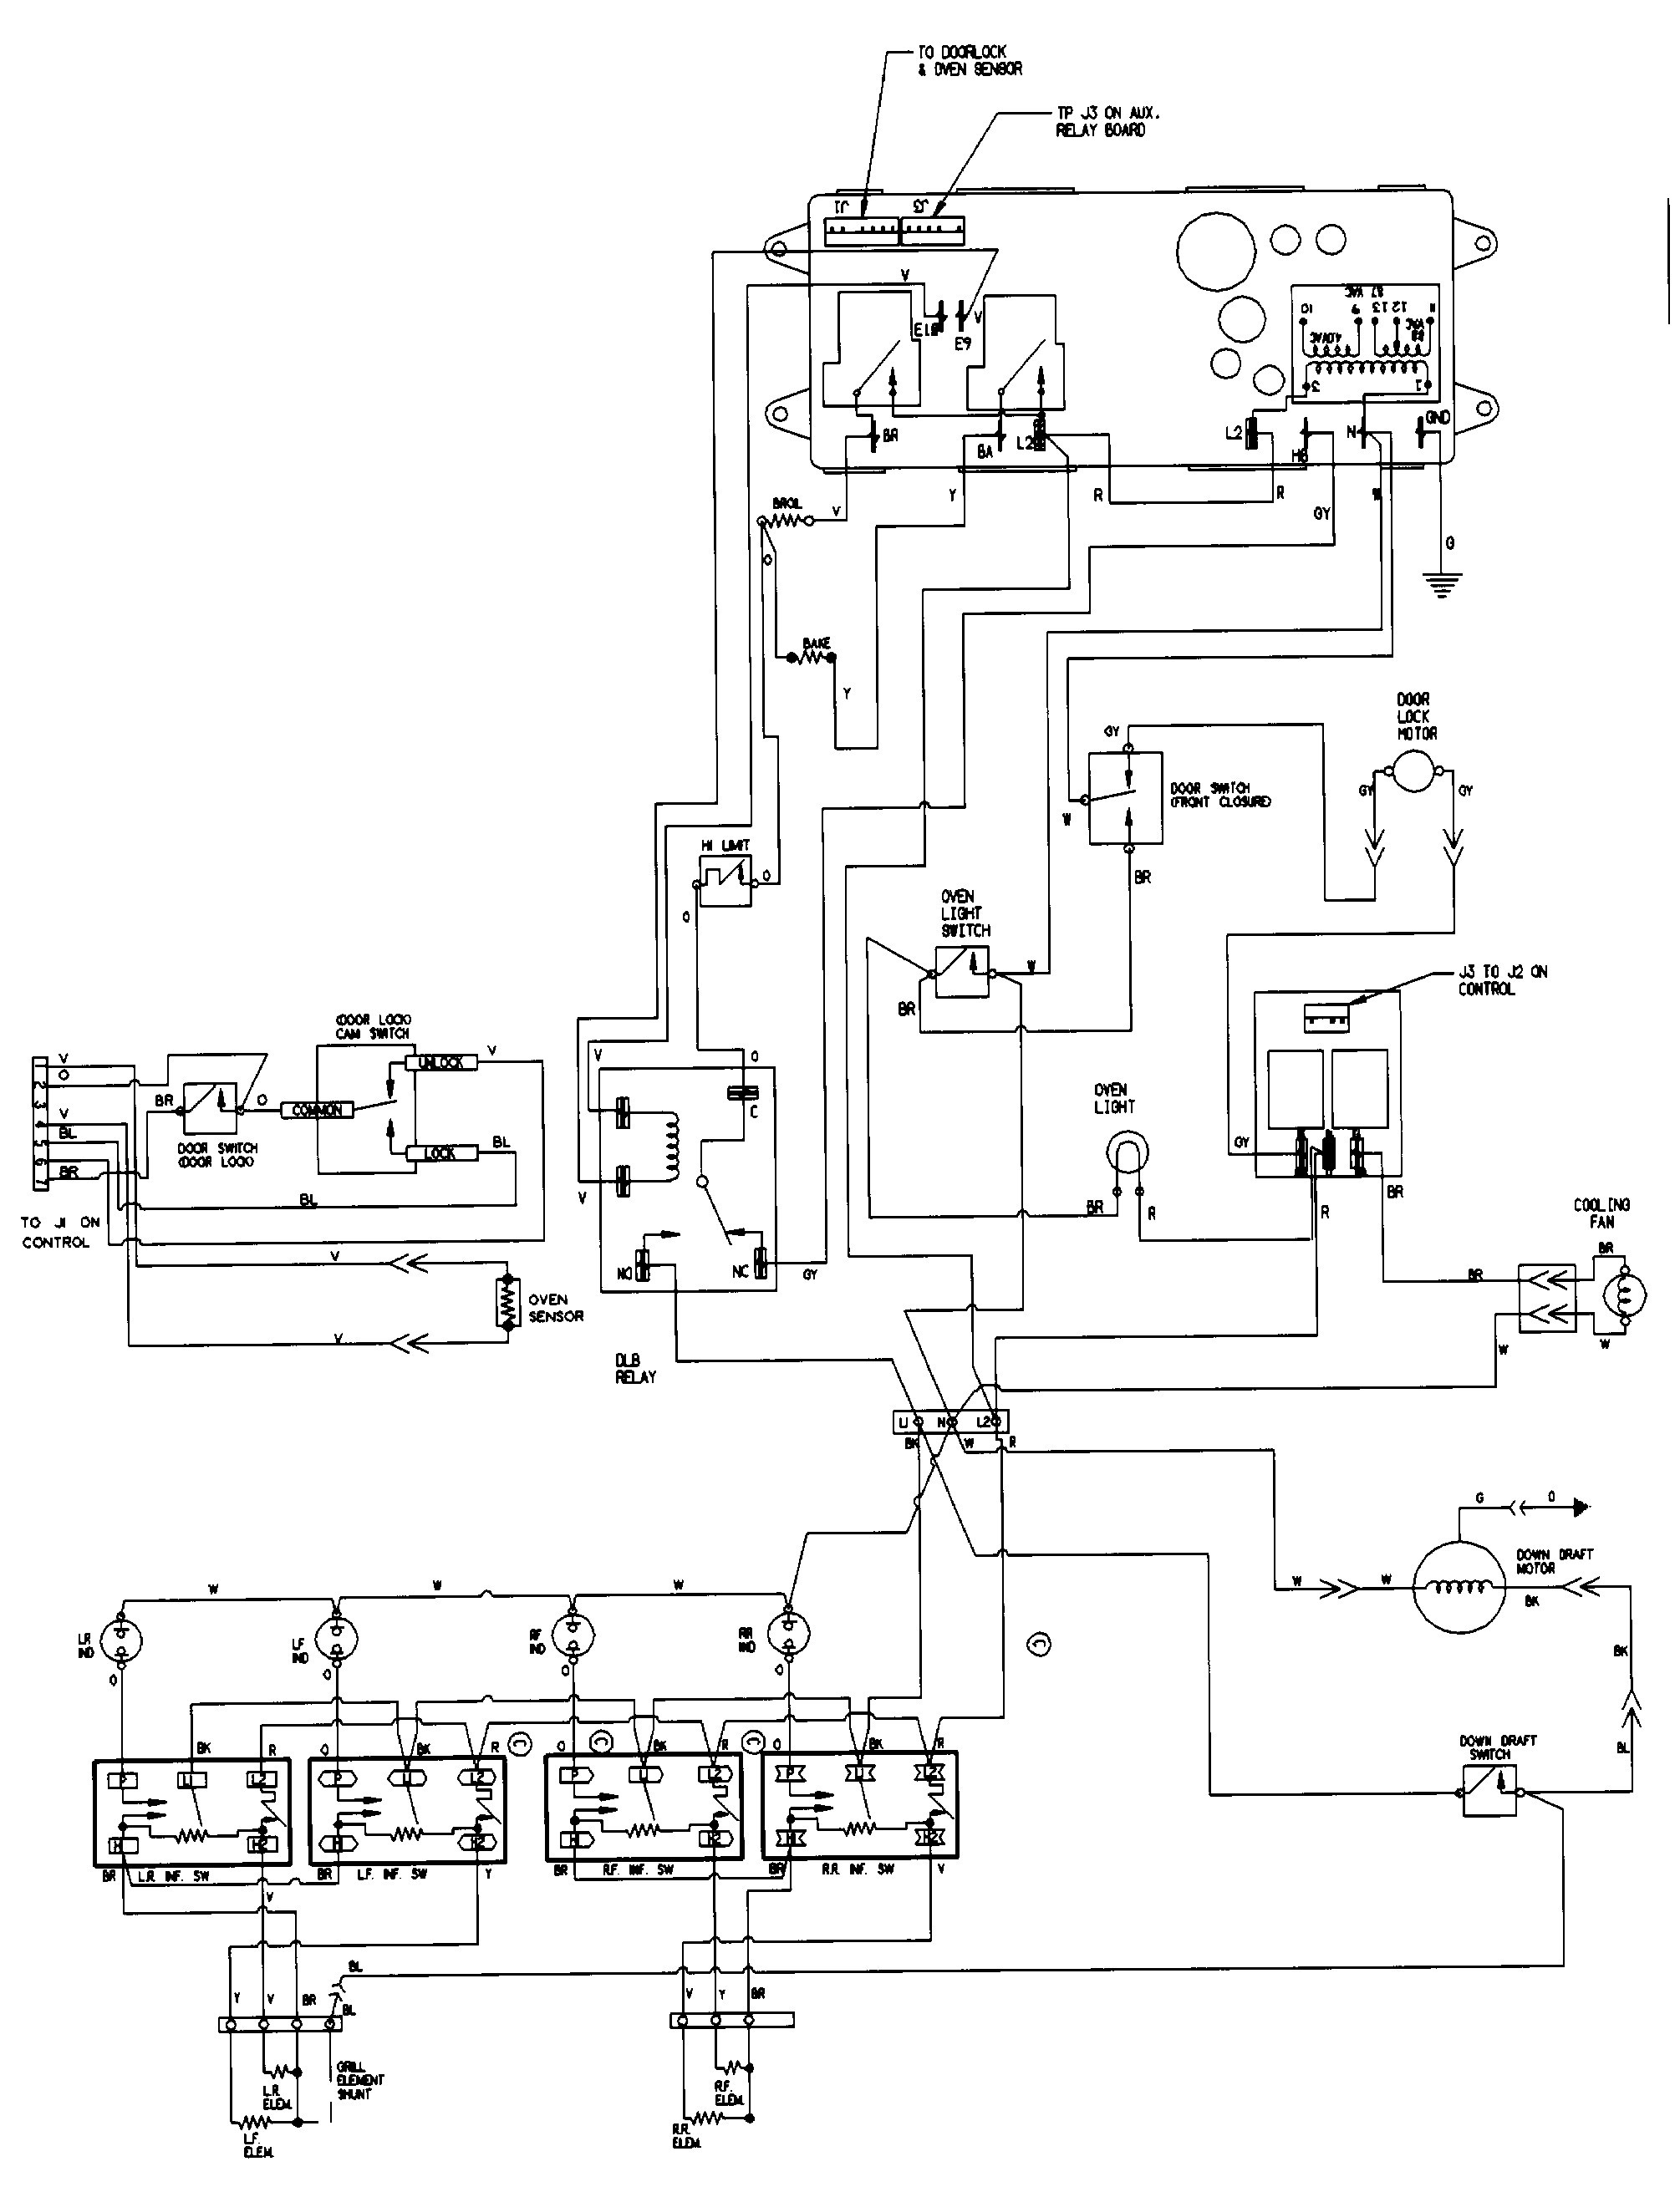 mitsubishi raider engine diagram 1995 mitsubishi mirage engine diagram | wiring library mitsubishi precis engine diagram